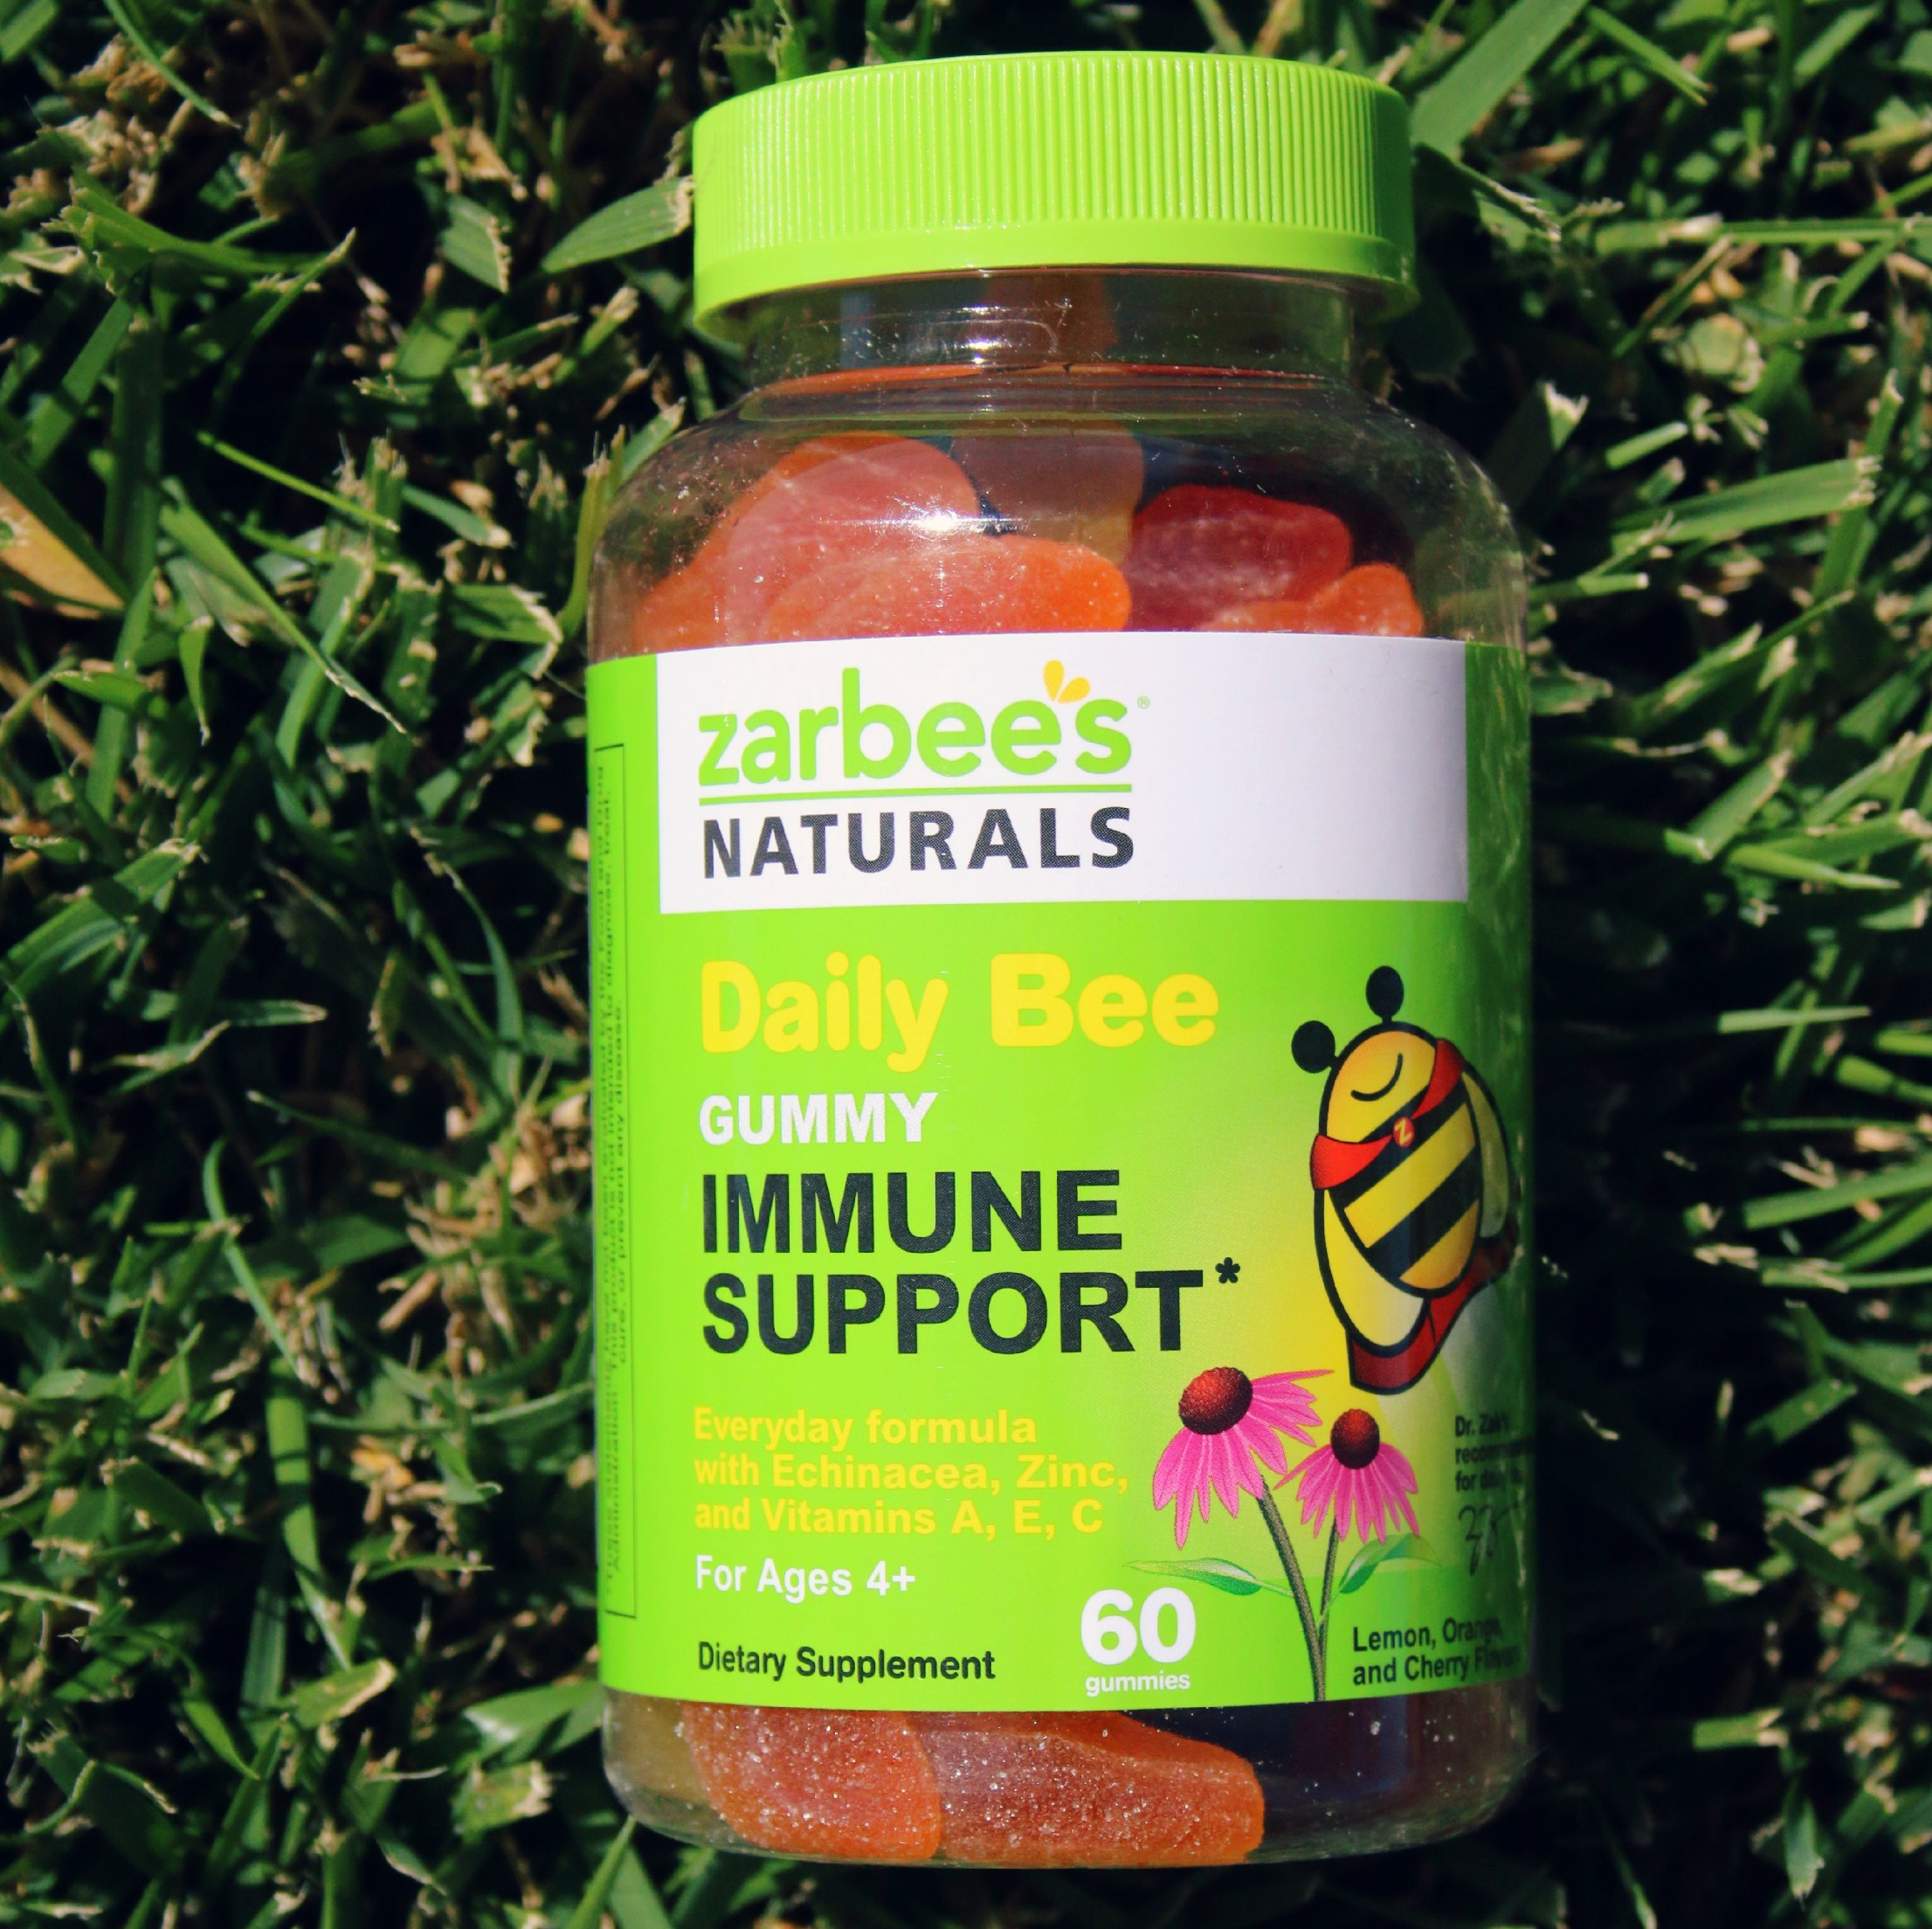 gummy immune support